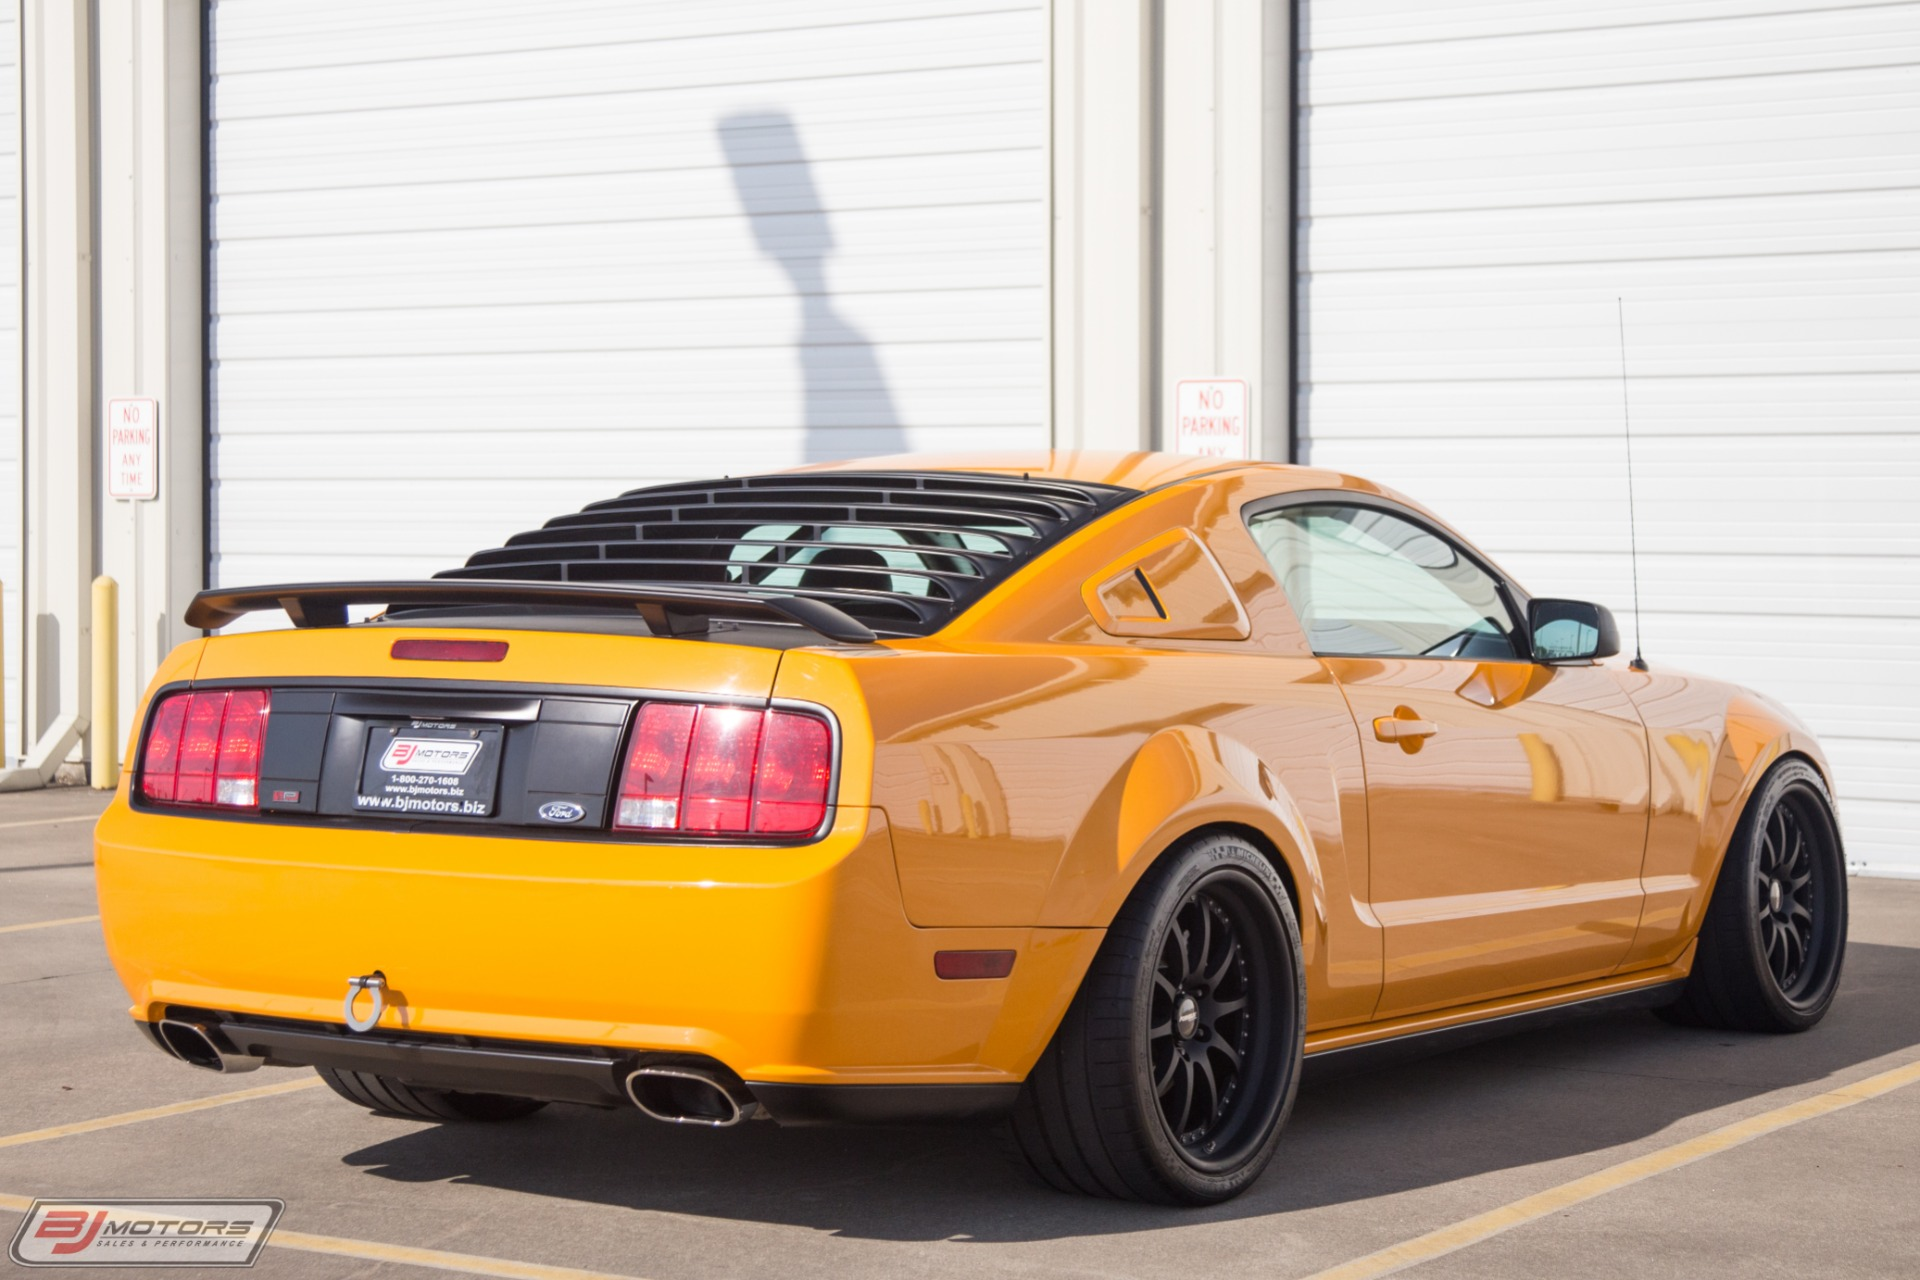 Used-2007-Ford-Mustang-Parnelli-Jones-with-Aluminator-XS-Crate-Engine